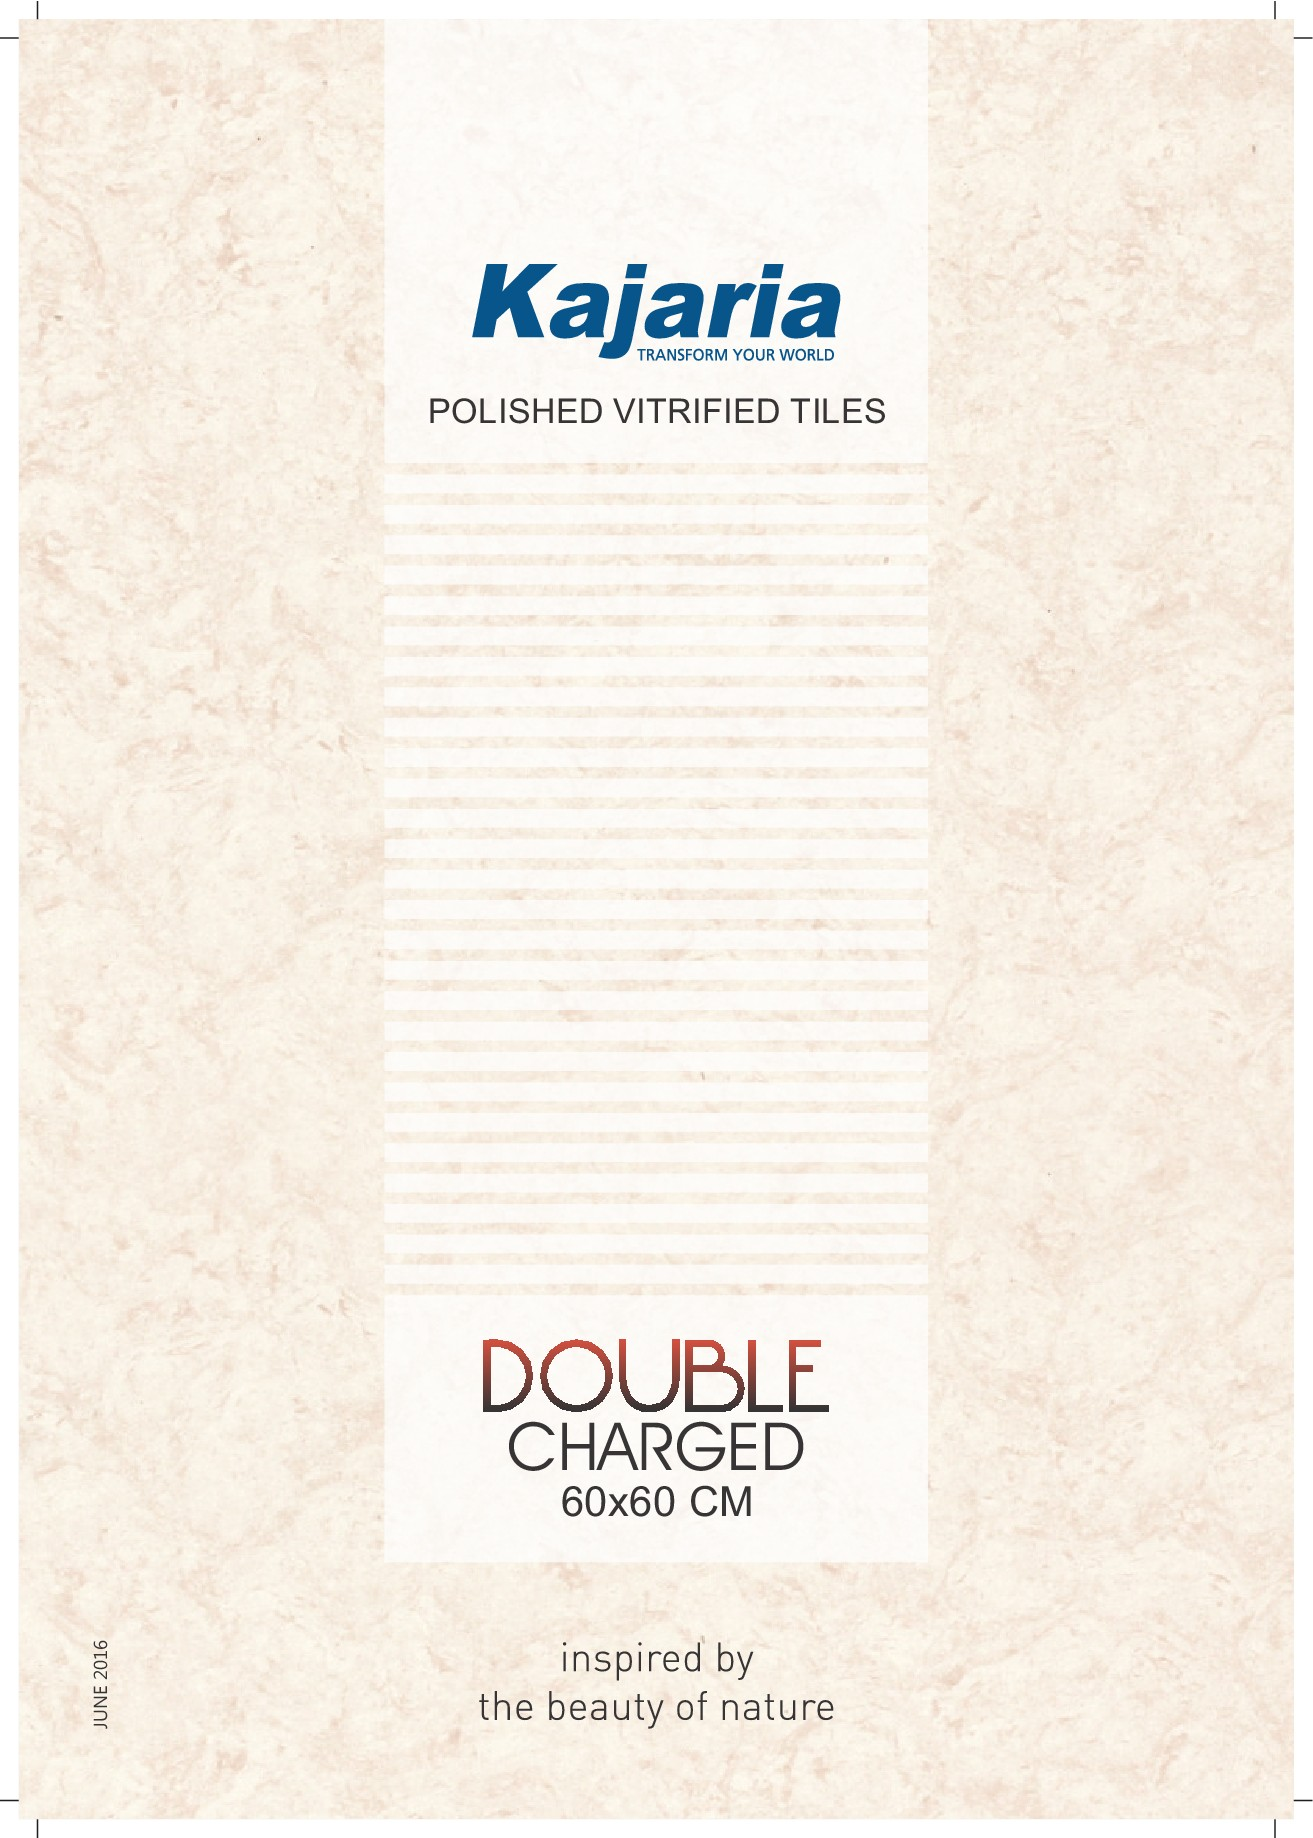 Kajaria Products Catalogue